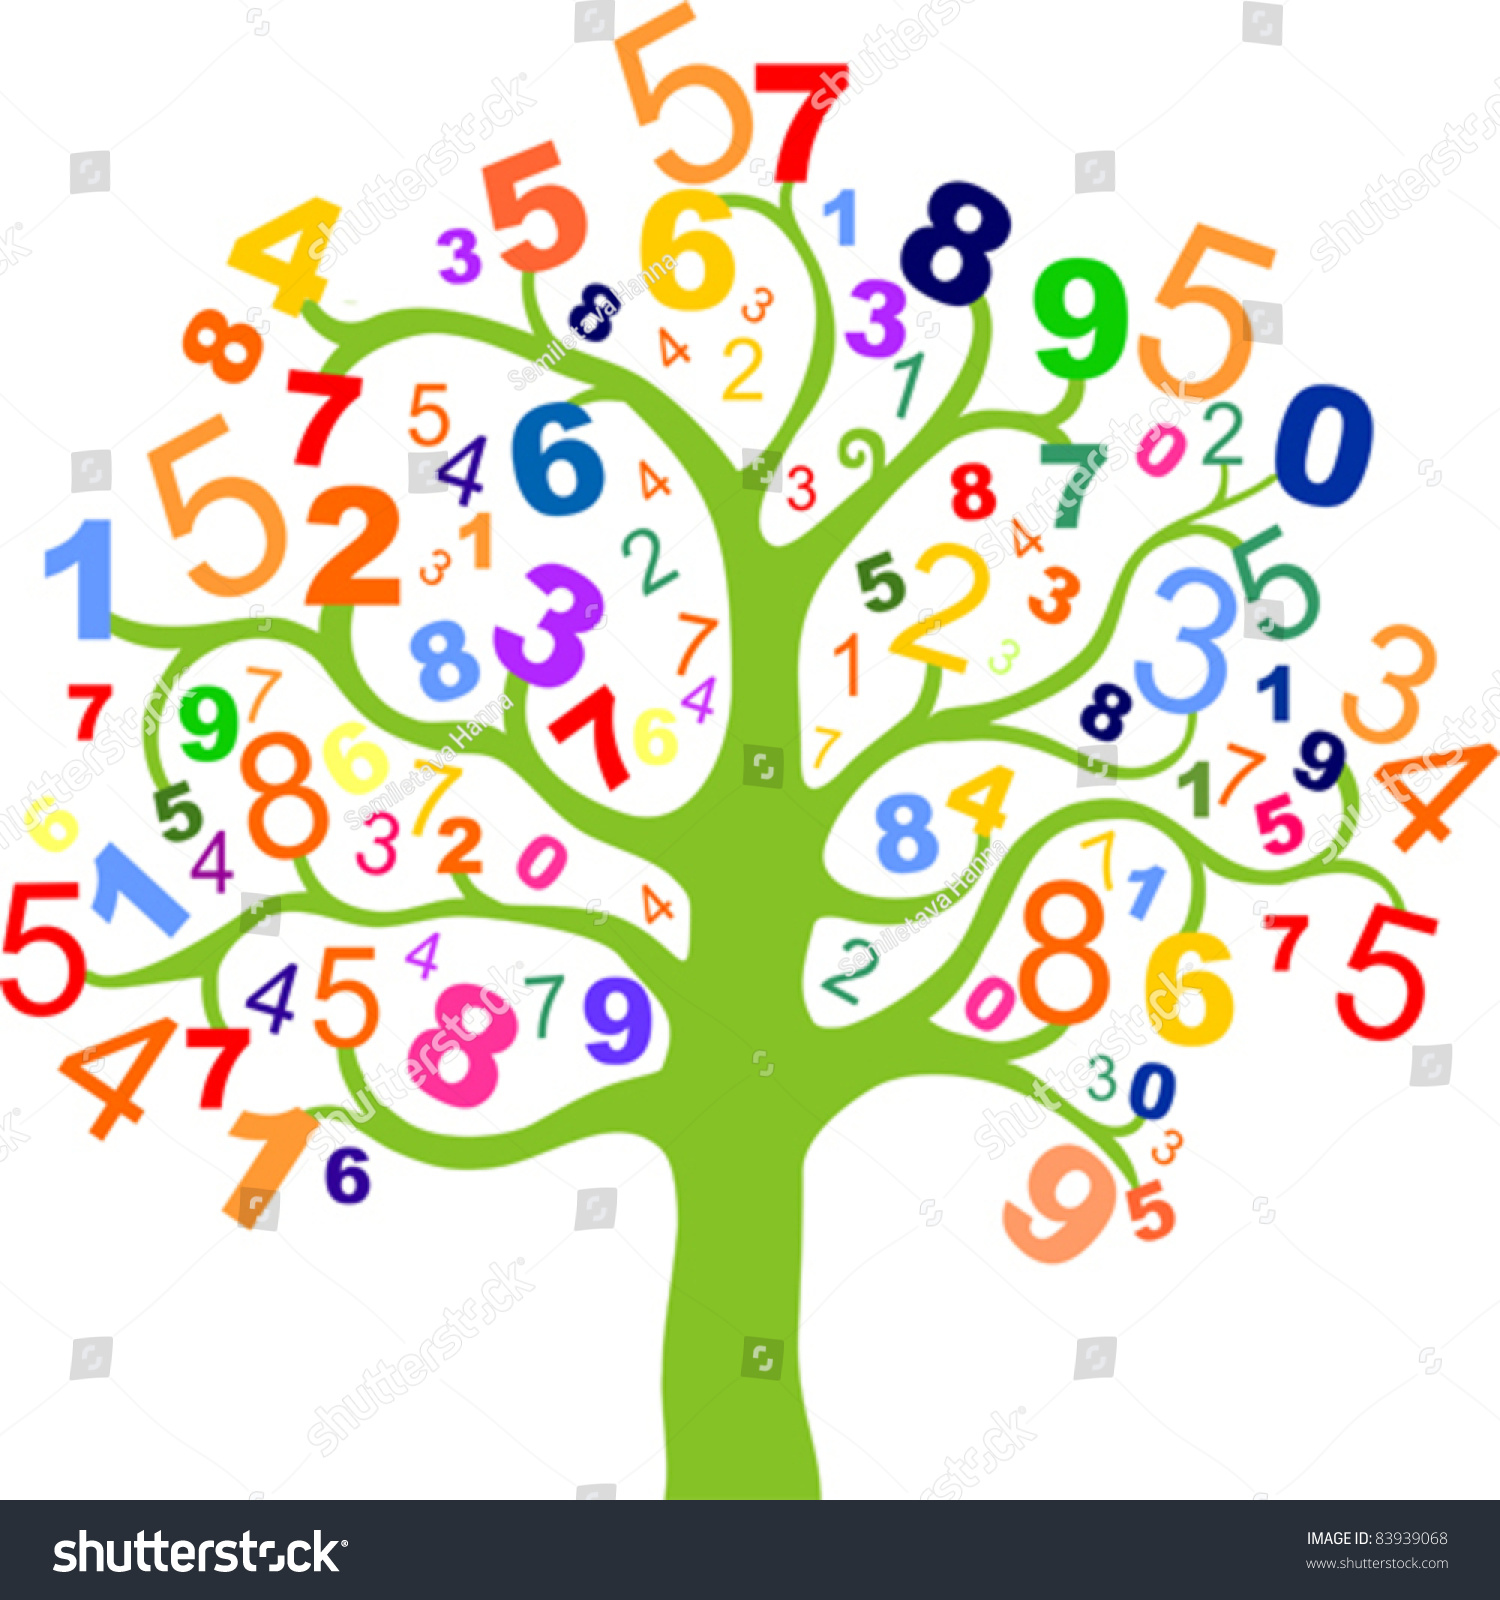 Abstract Colorful Tree With Numbers Isolated On White ...